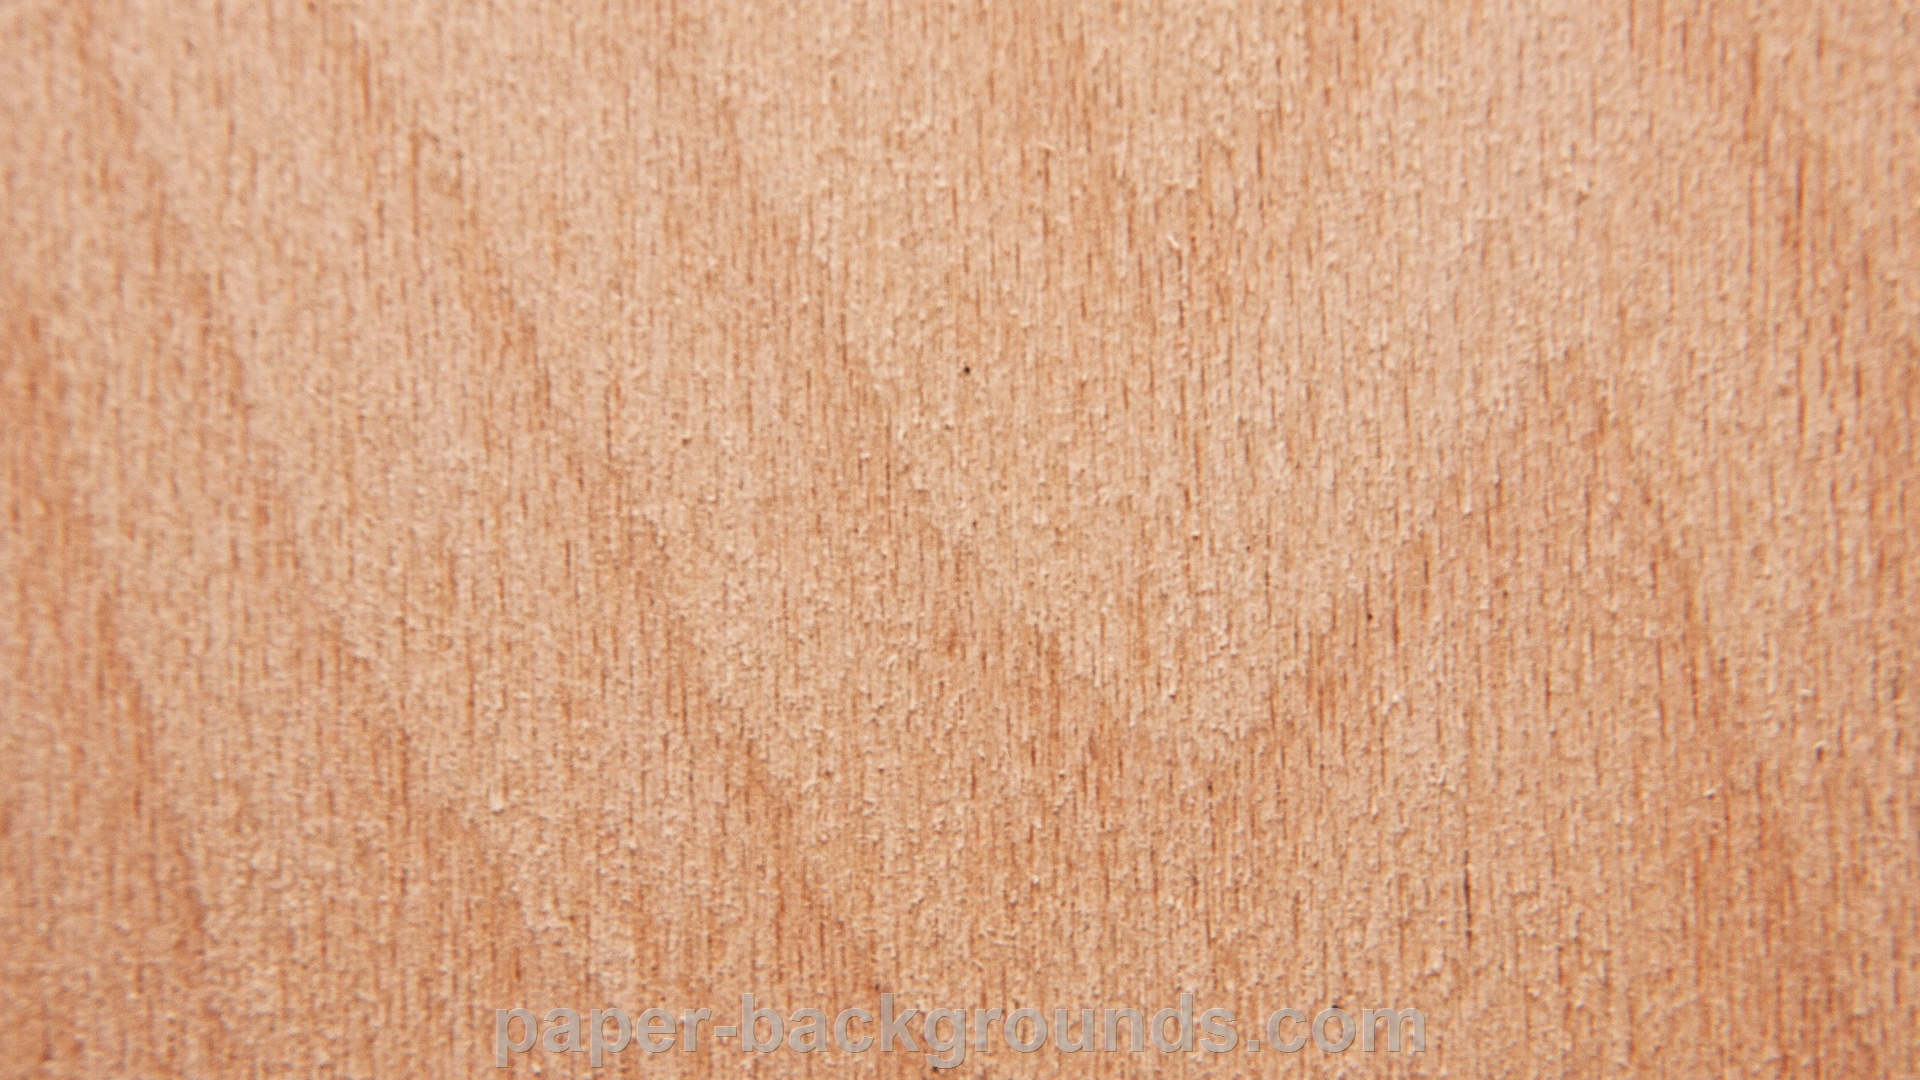 comtextureimages201207light brown wood texture background hdjpg 1920x1080